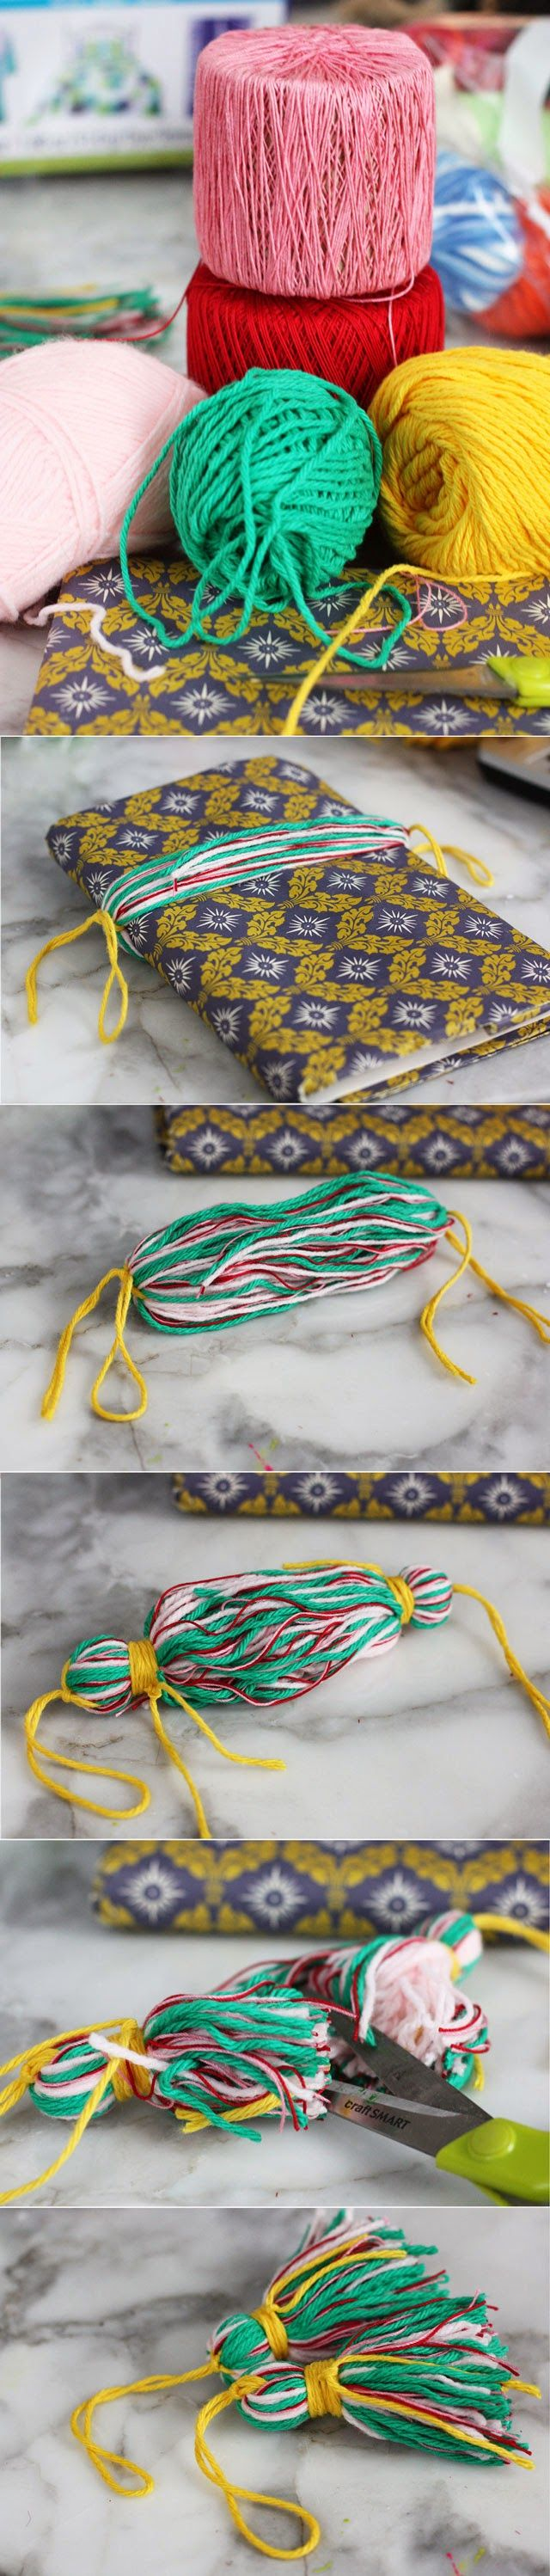 How to make simple tassels with yarn.